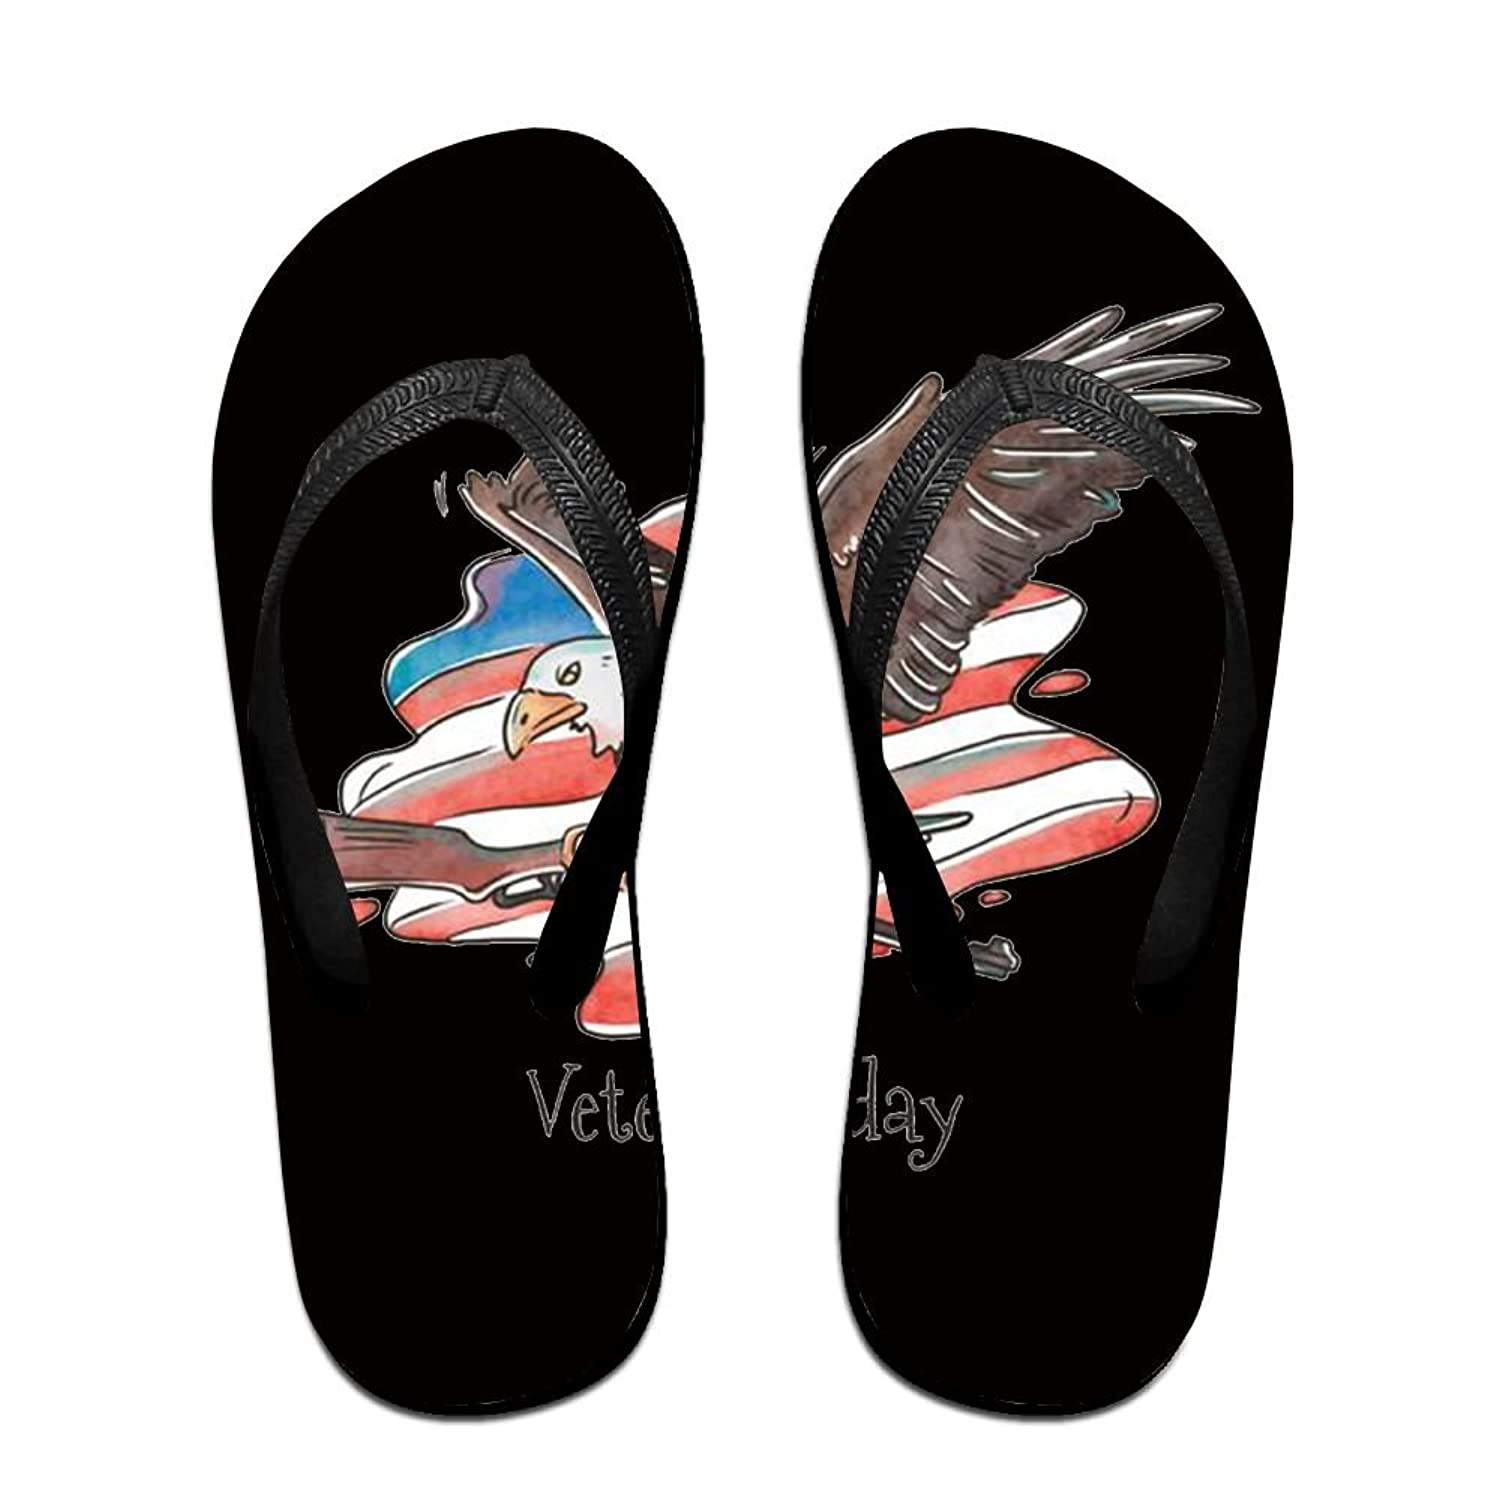 Unisex Non-slip Flip Flops Old American Flag Eagle Cool Beach Slippers Sandal